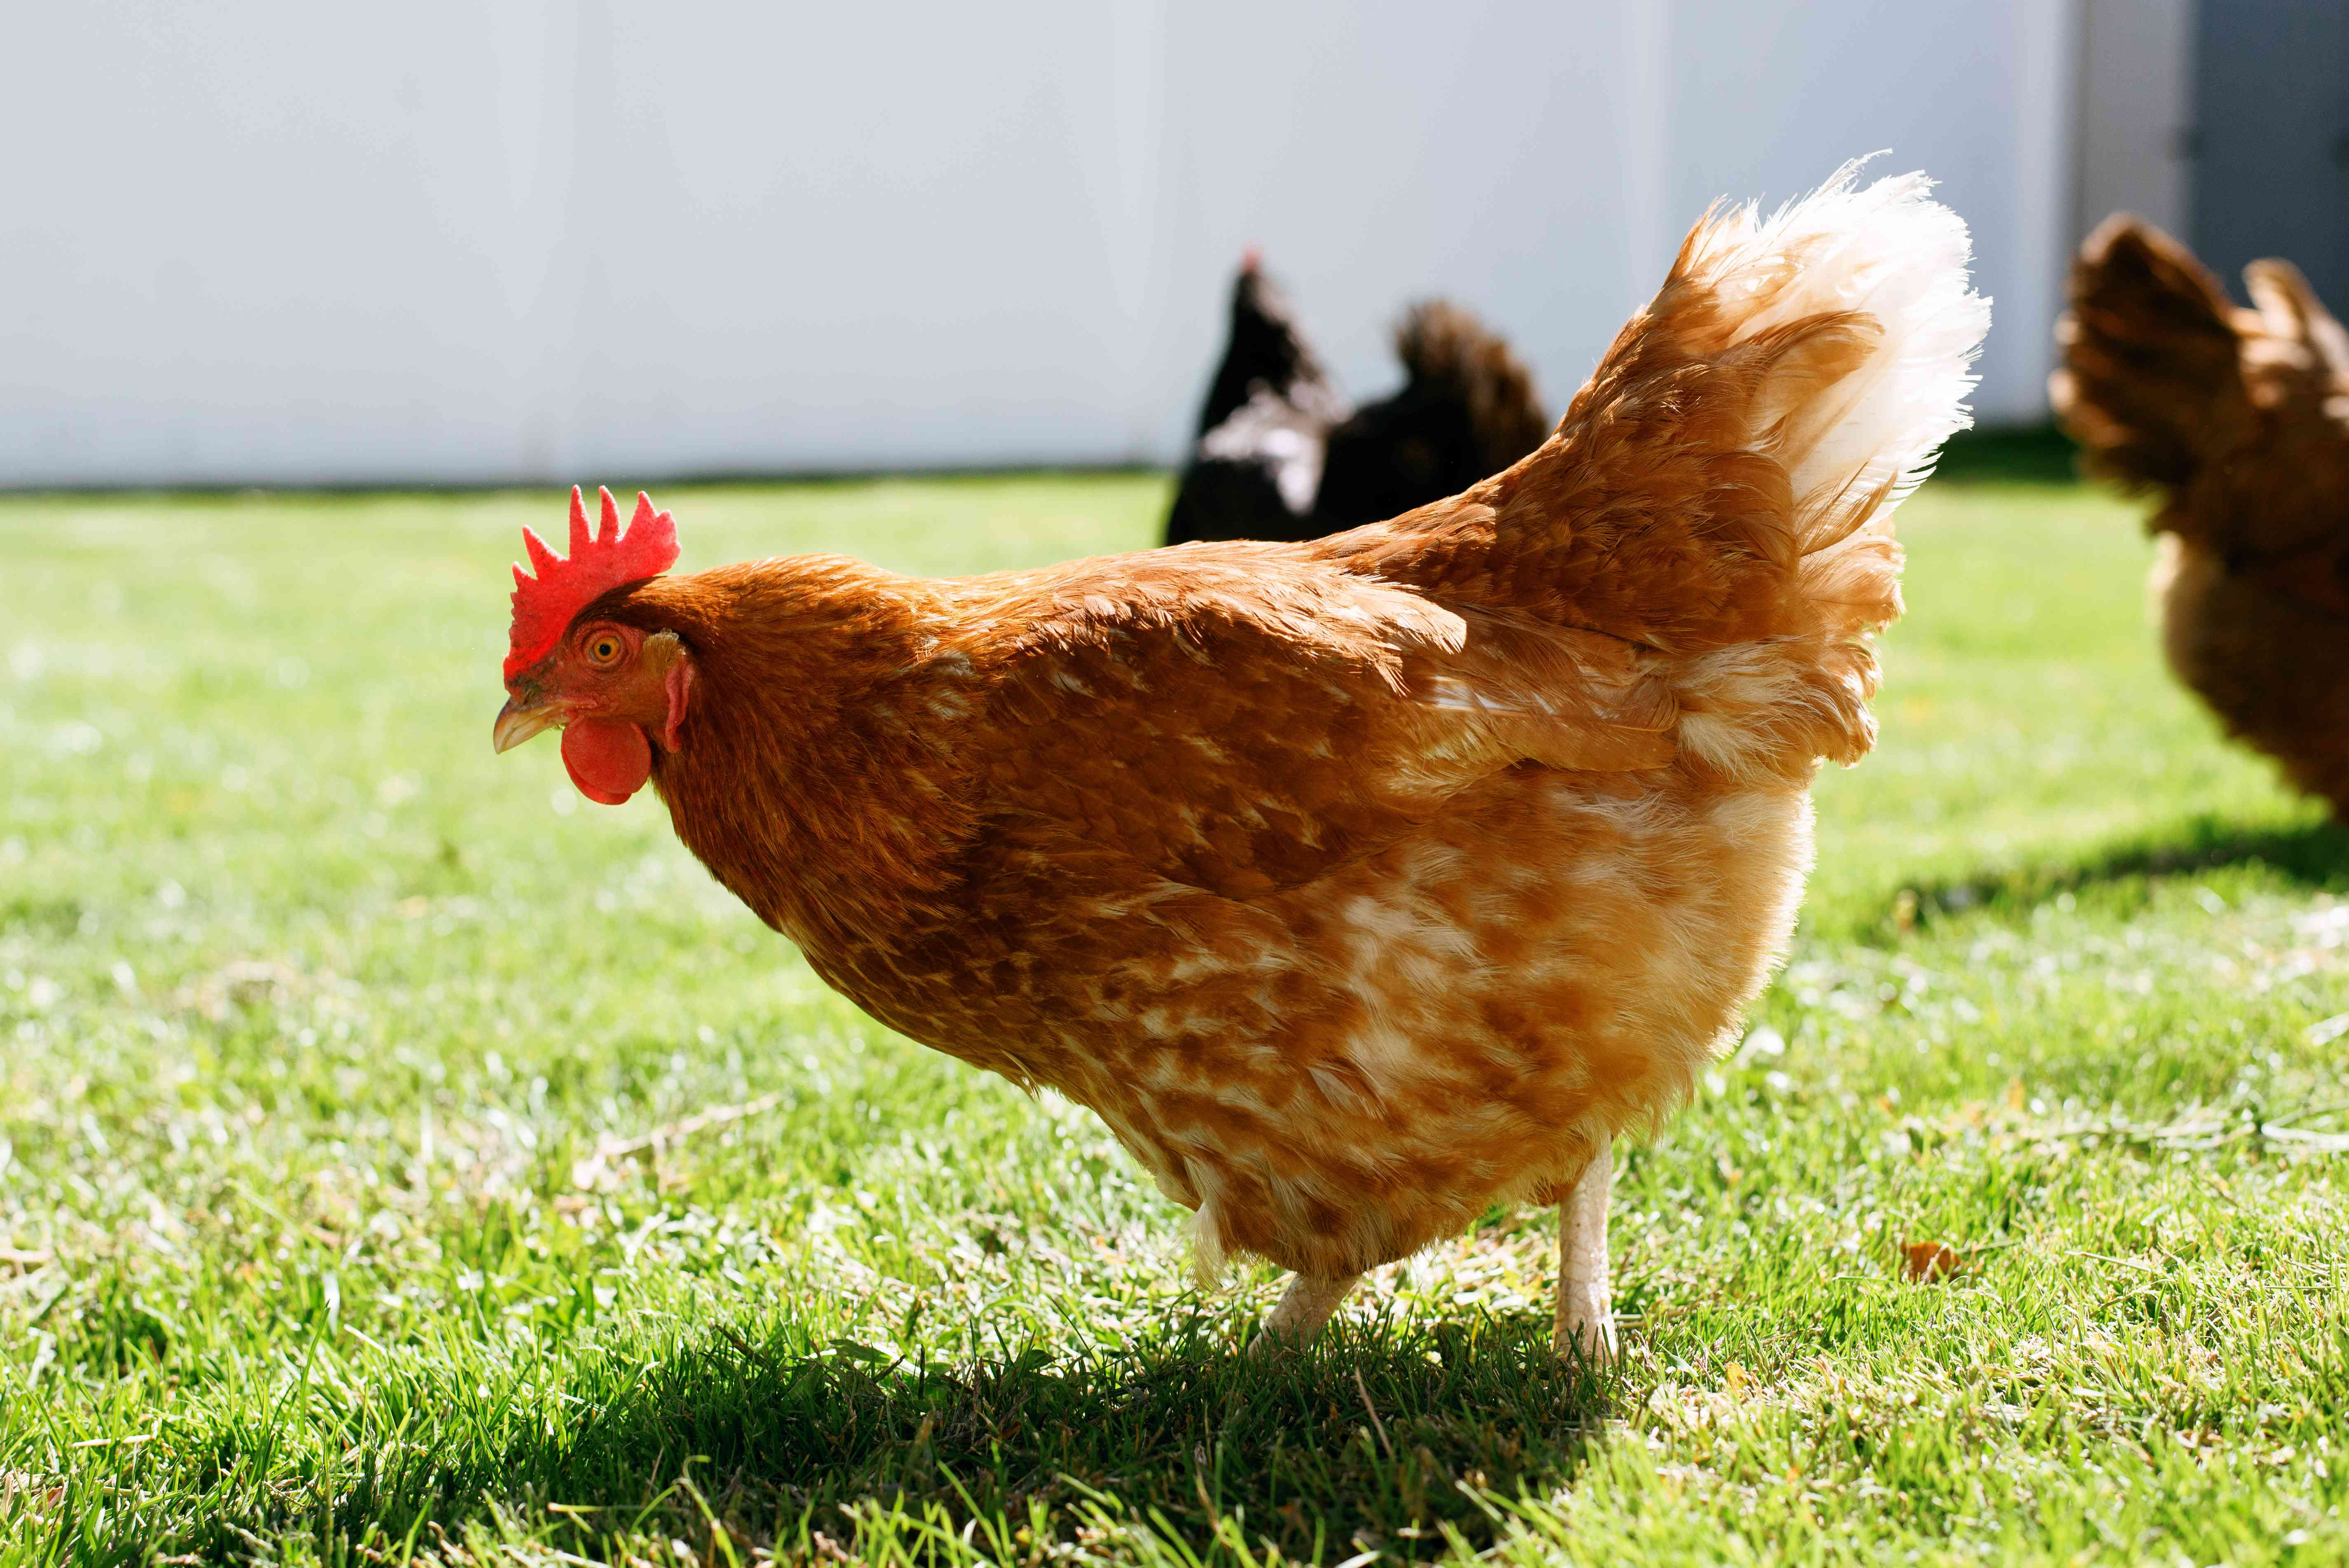 Brown chickens walking on grass to catch ticks and repel them naturally